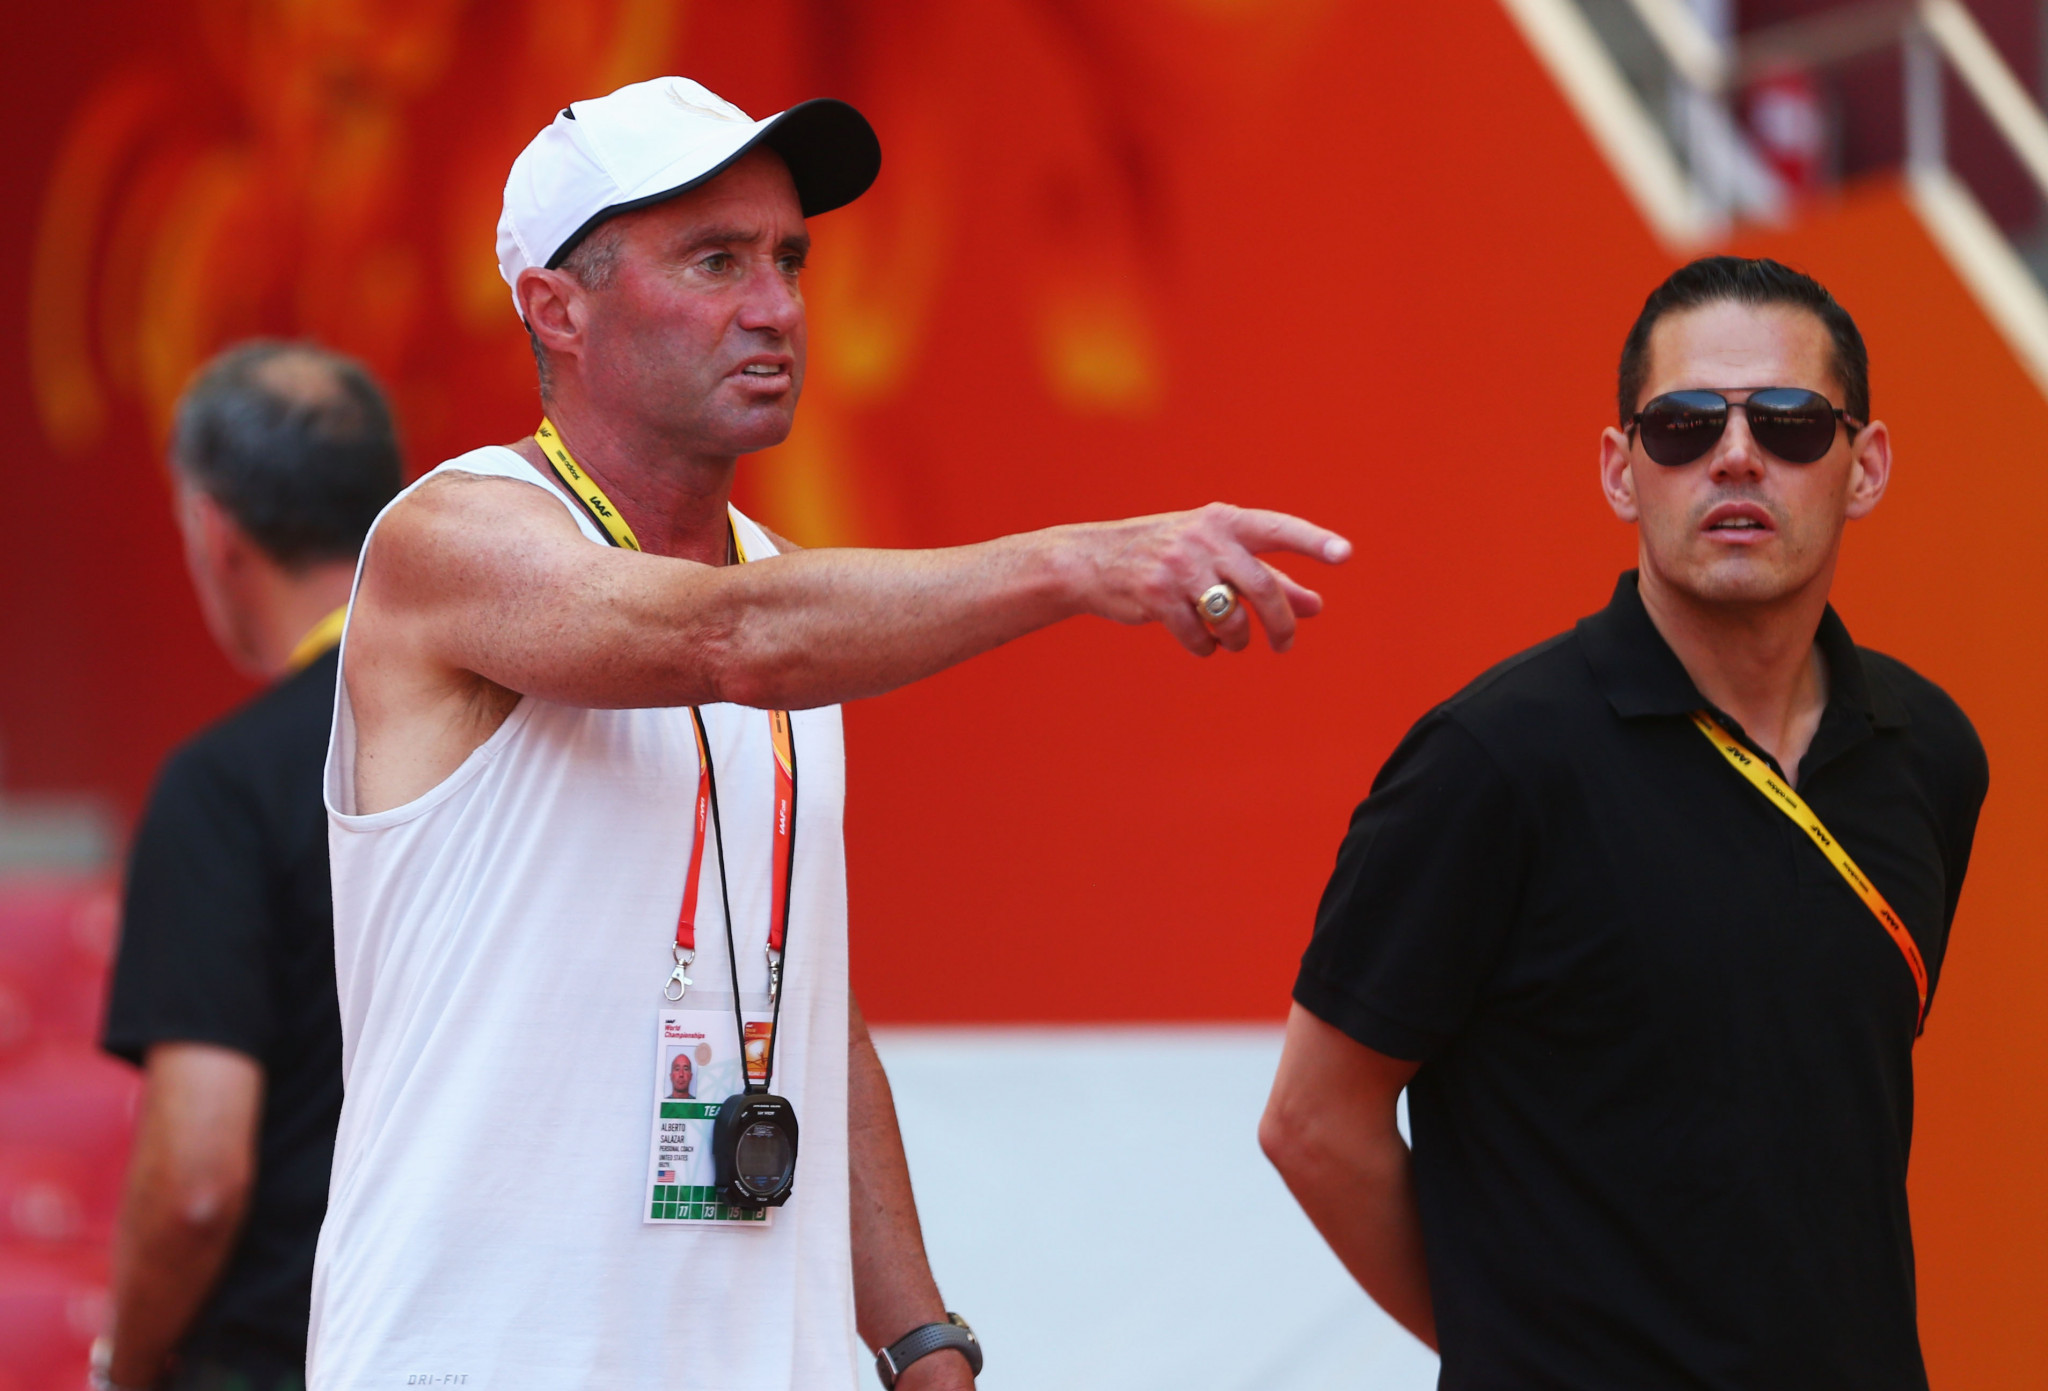 Alberto Salazar was recently found guilty of doping violations and given a four-year ban ©Getty Images